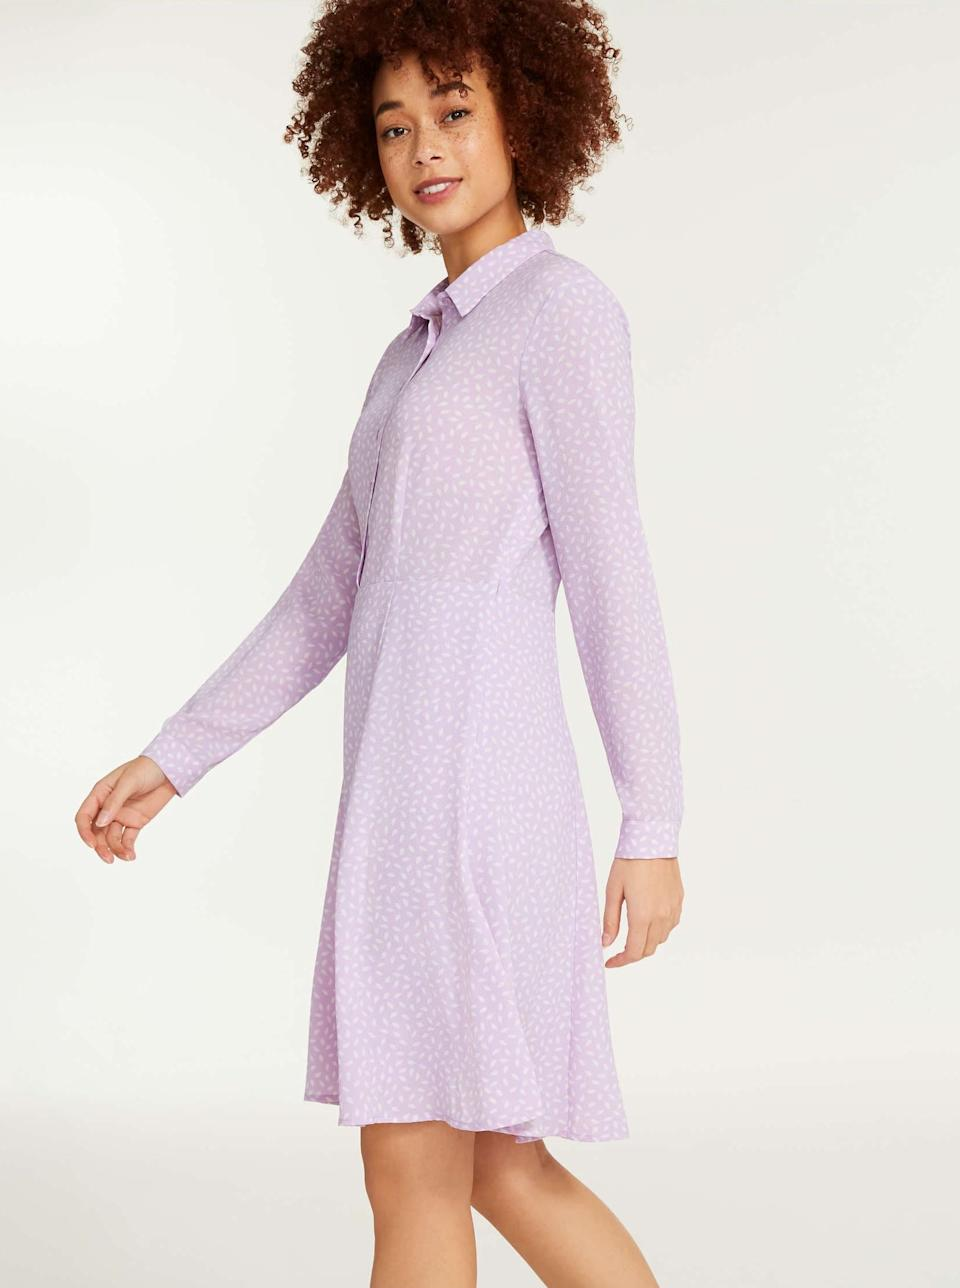 Joe Fresh Crepe Shirtdress. Image via Joe Fresh.